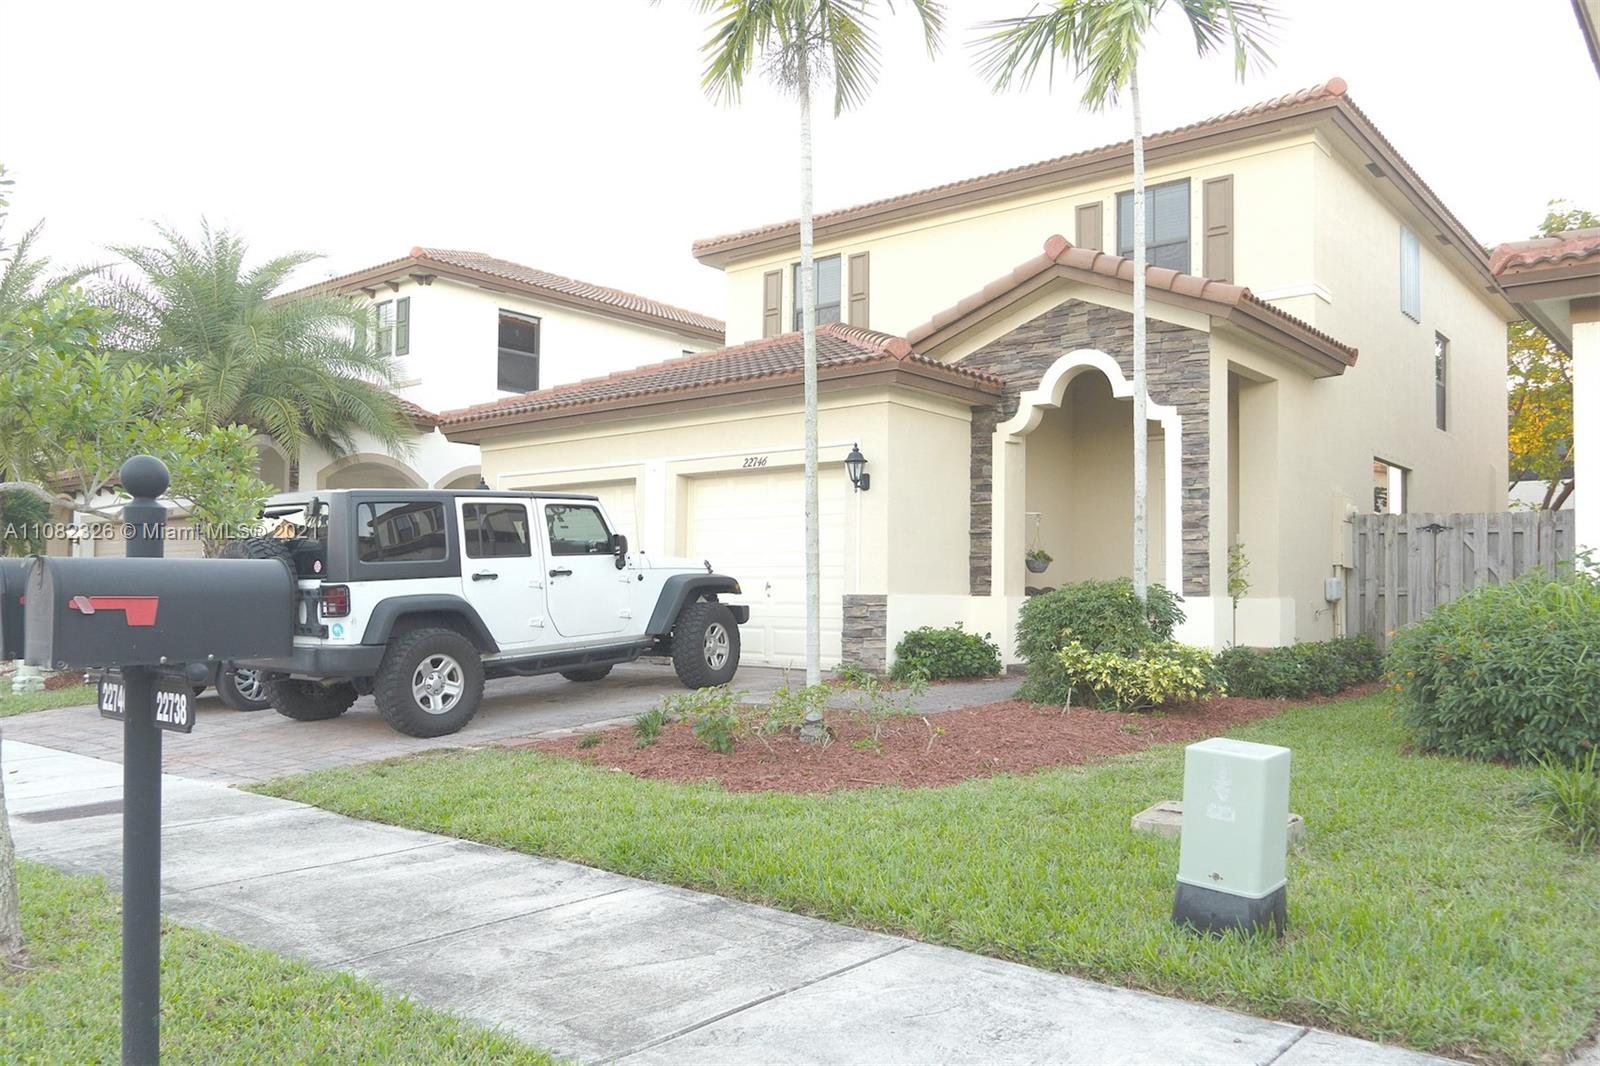 Beautiful Property for Rent in the excellent community of Isles at Bayshore. With 4 spacious rooms. High ceilings allows for the property to have ample space. Kitchen has granite countertops, Community pool and Park. No carpet on second floor laminated throughout. This will not last.